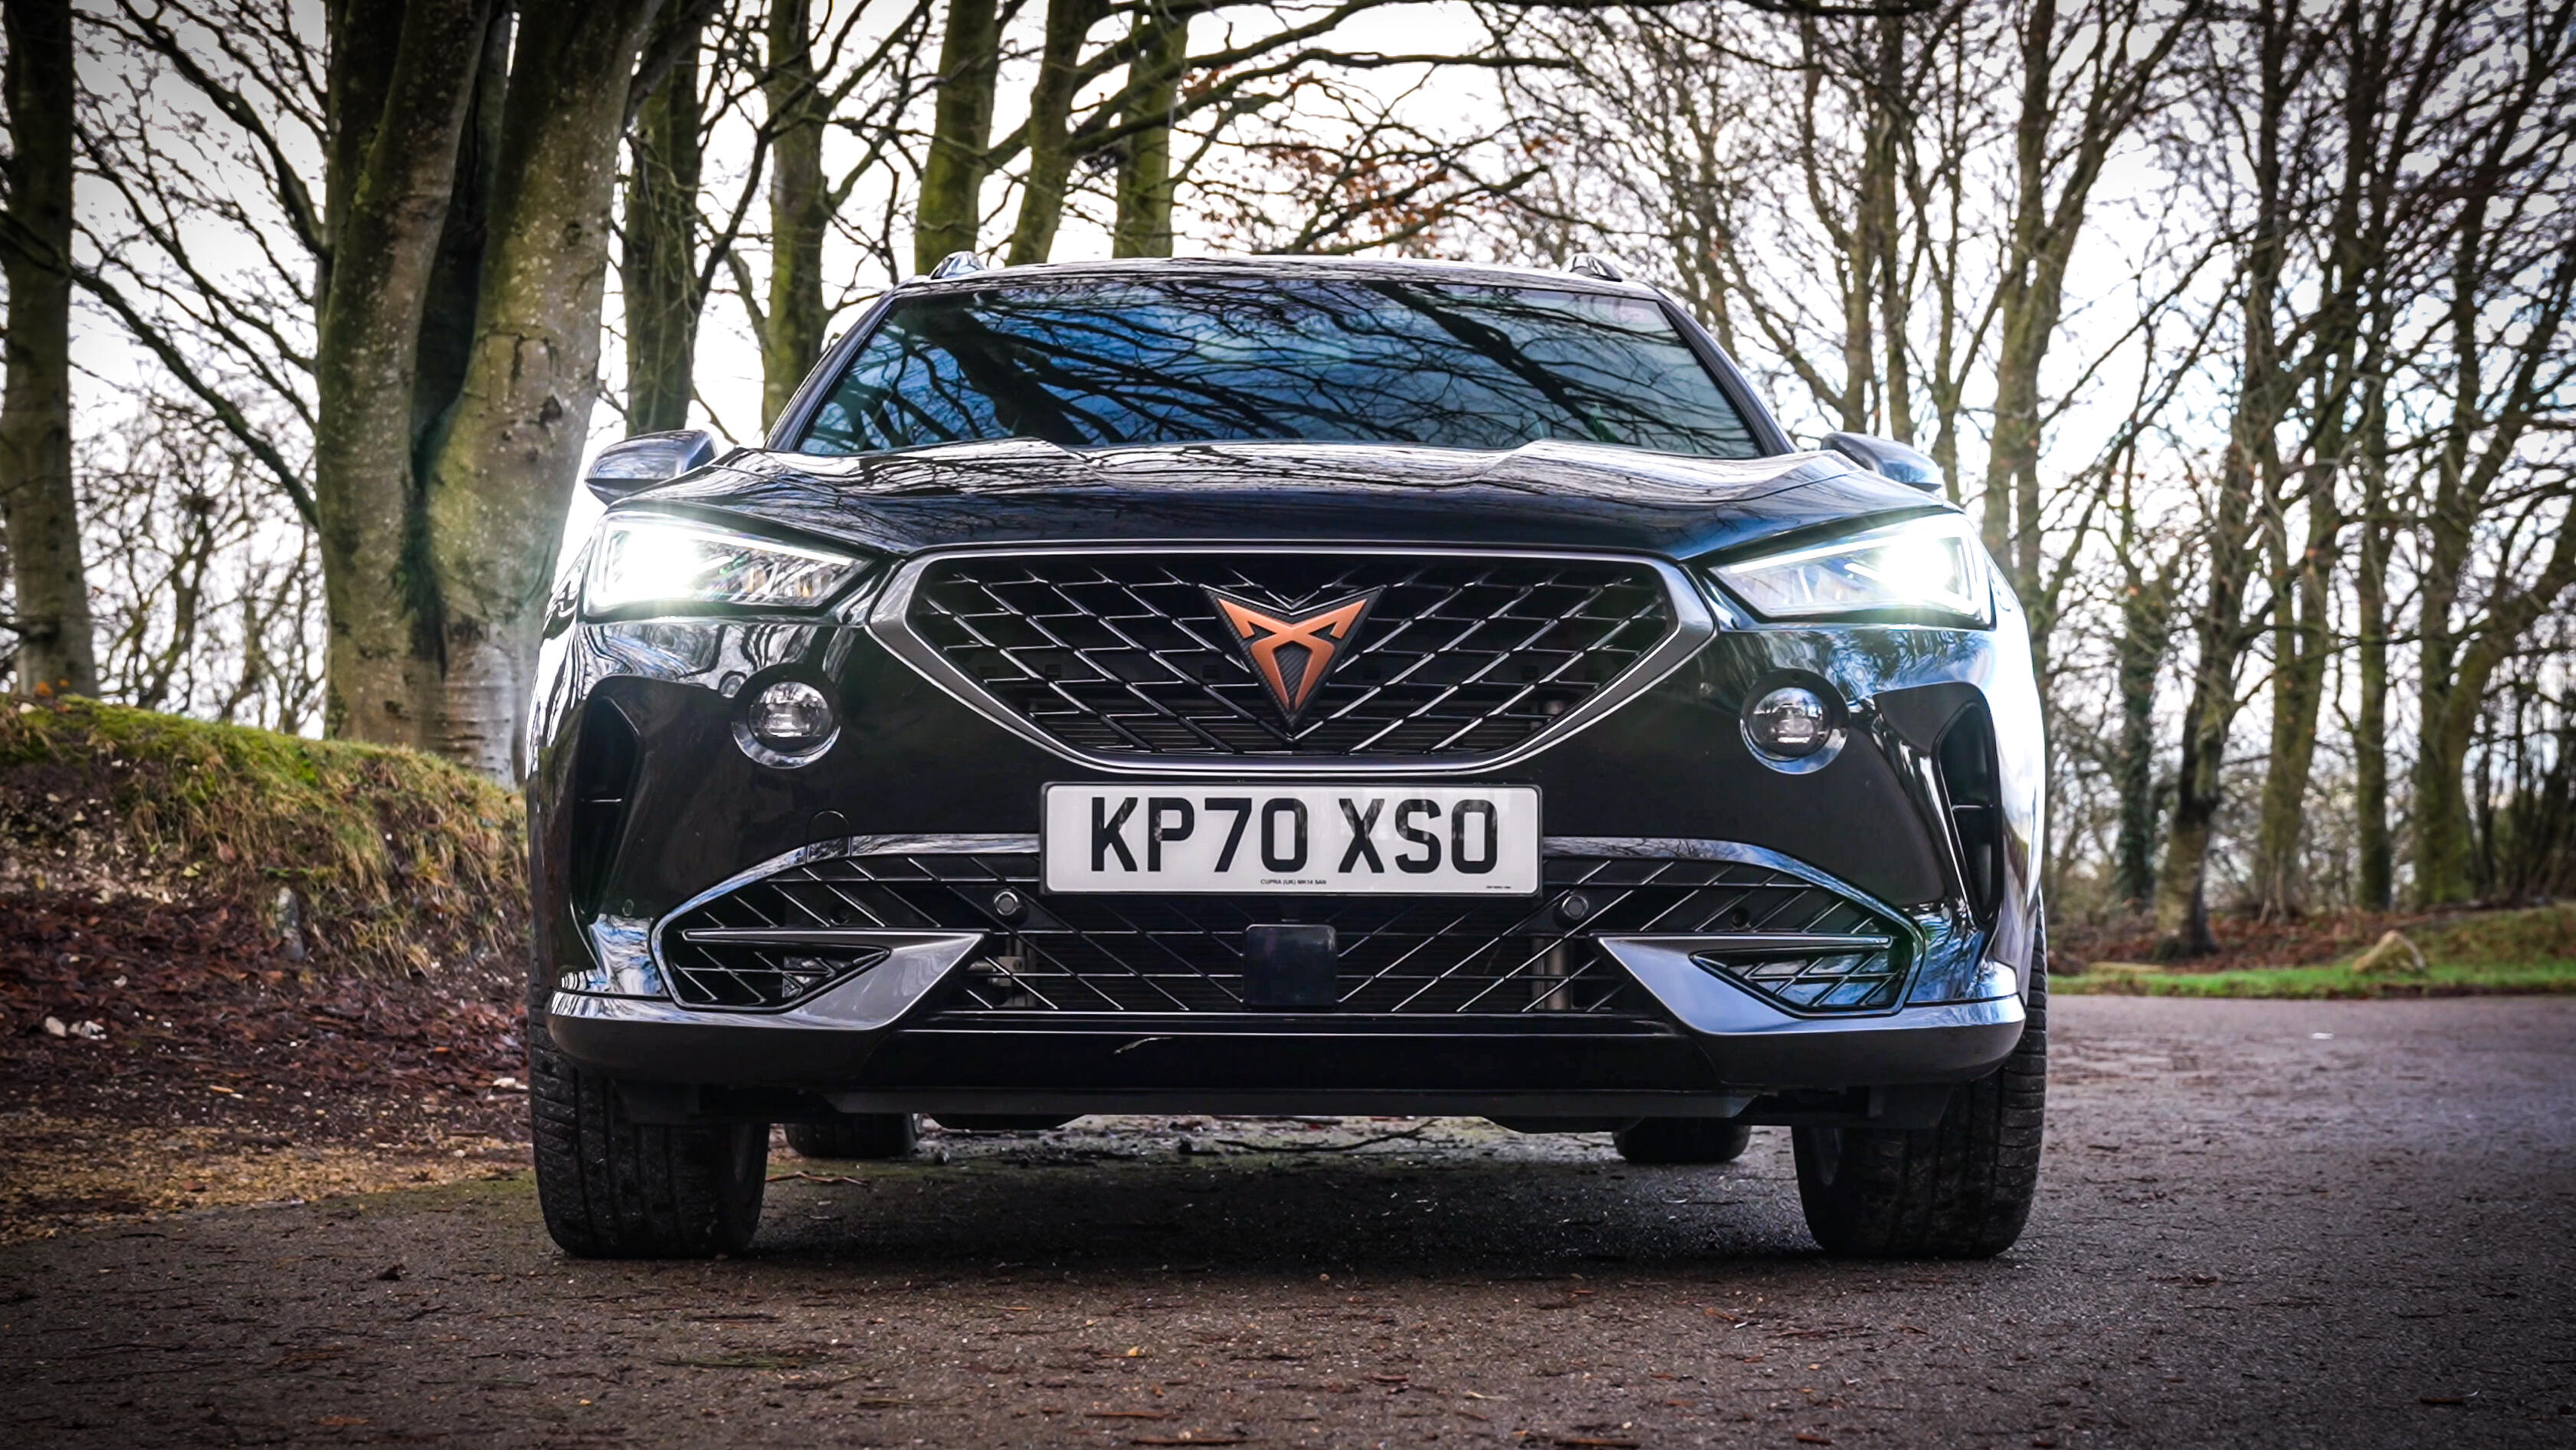 Video: The Cupra Fomentor sets a high bar for the new brand